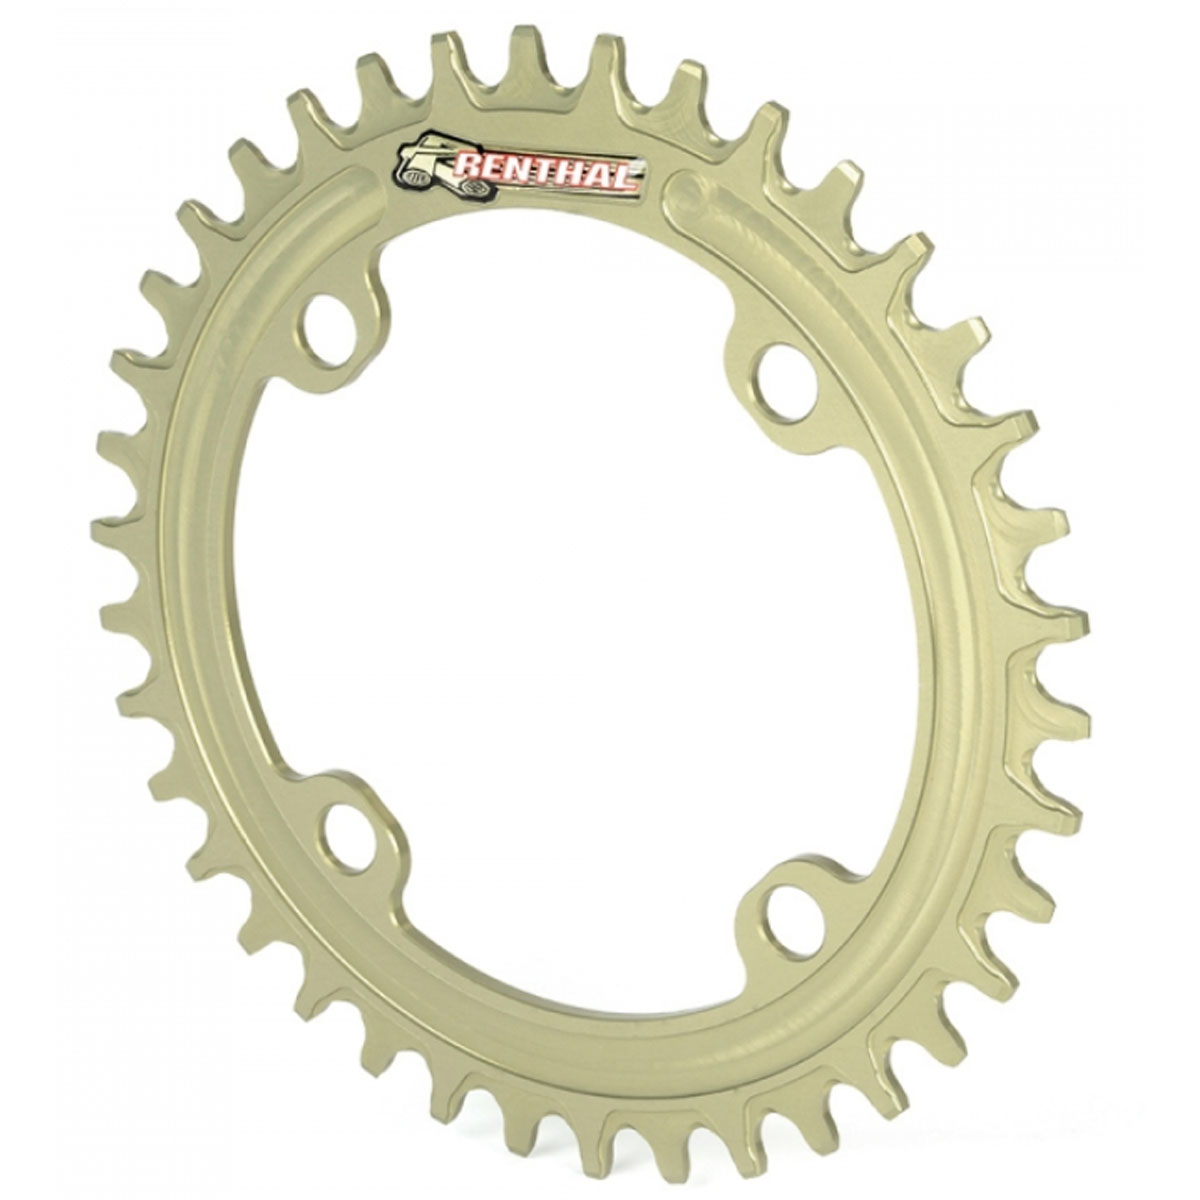 Renthal 1XR 104mm Retaining Aluminum Bicycle Chainring - 36T, 9-11sp, BCD: 104 - Gold - MCR107-564-36PHA